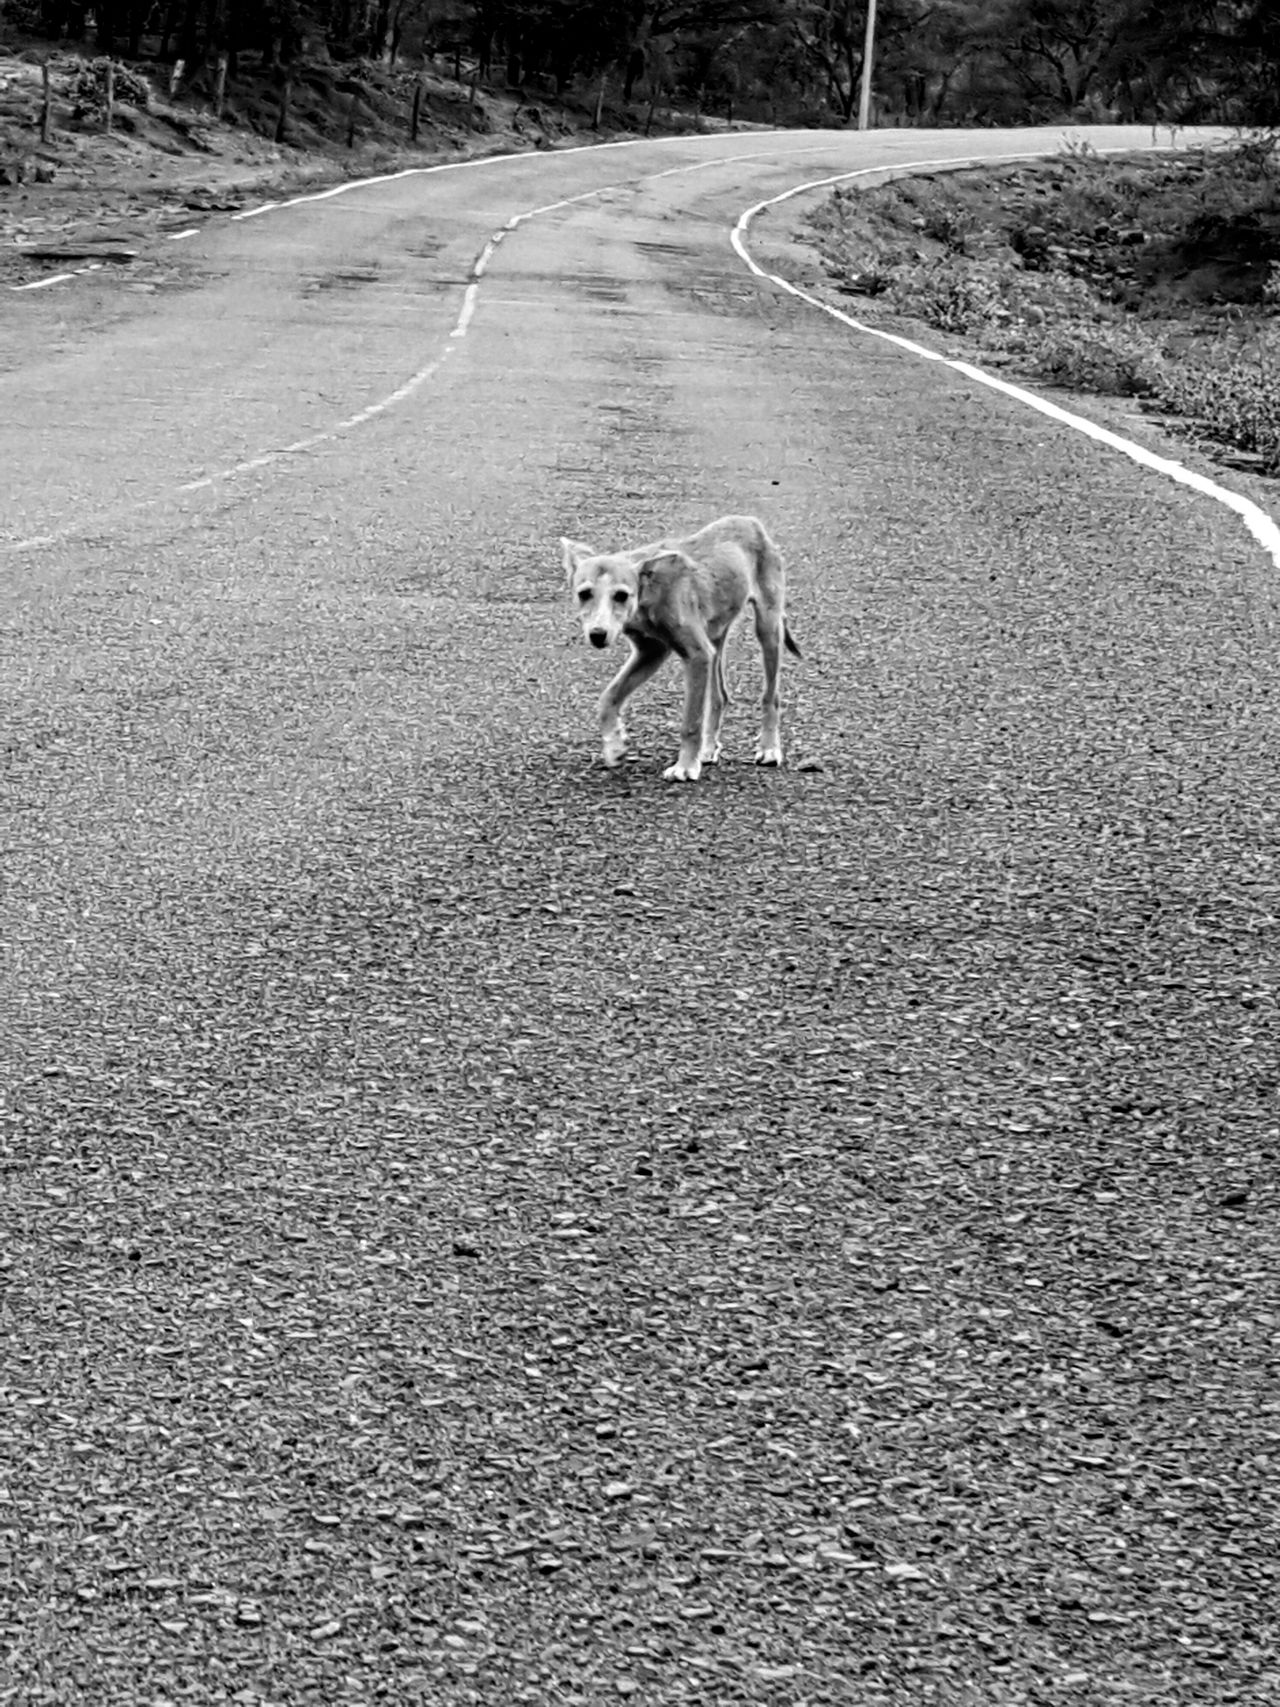 Animal Themes One Animal Domestic Animals Dog Pets Lonely Dog Lonely Road Lonely Objects Lonely